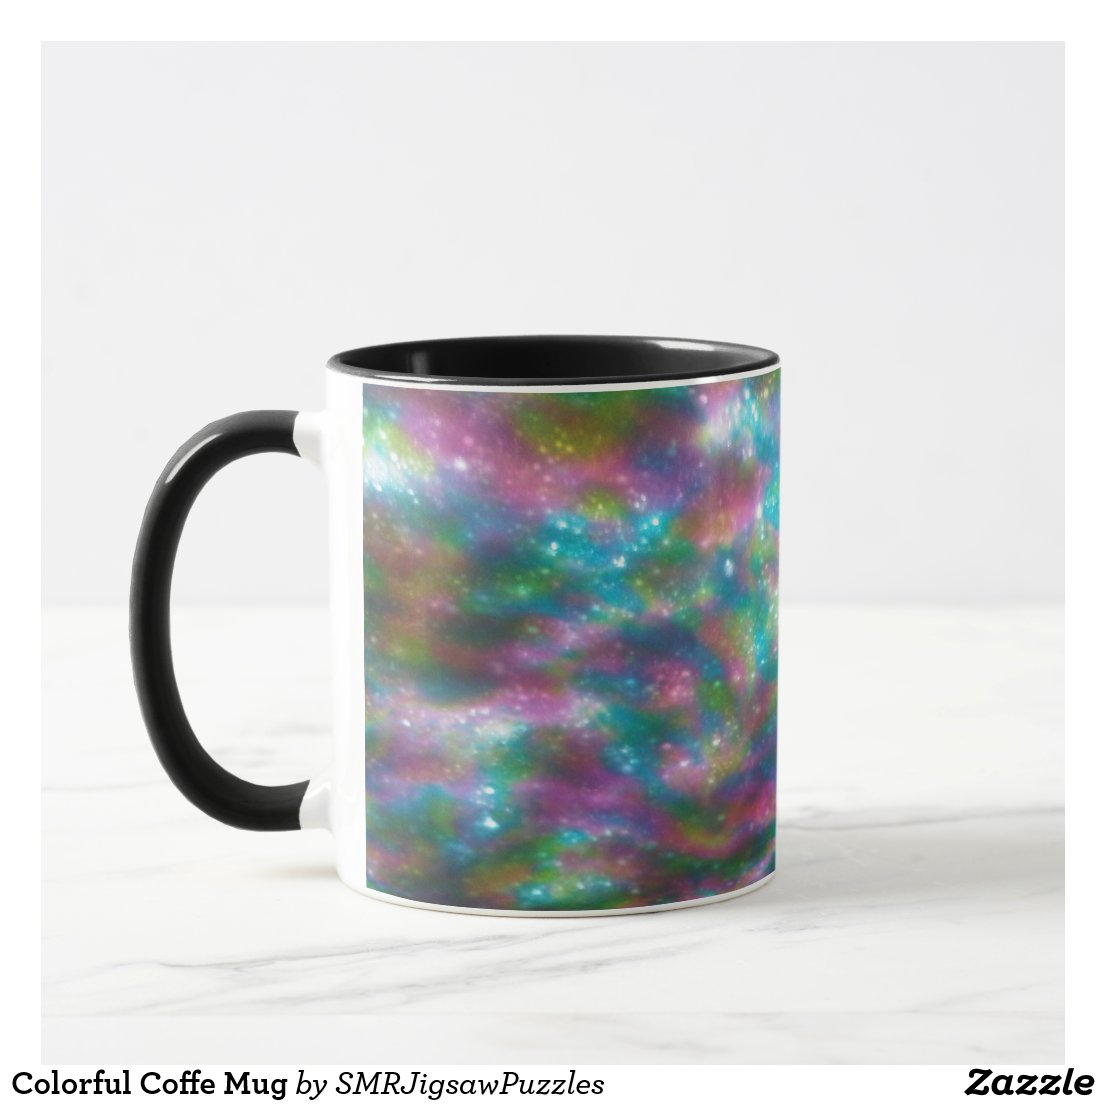 Colorful Coffe Mug